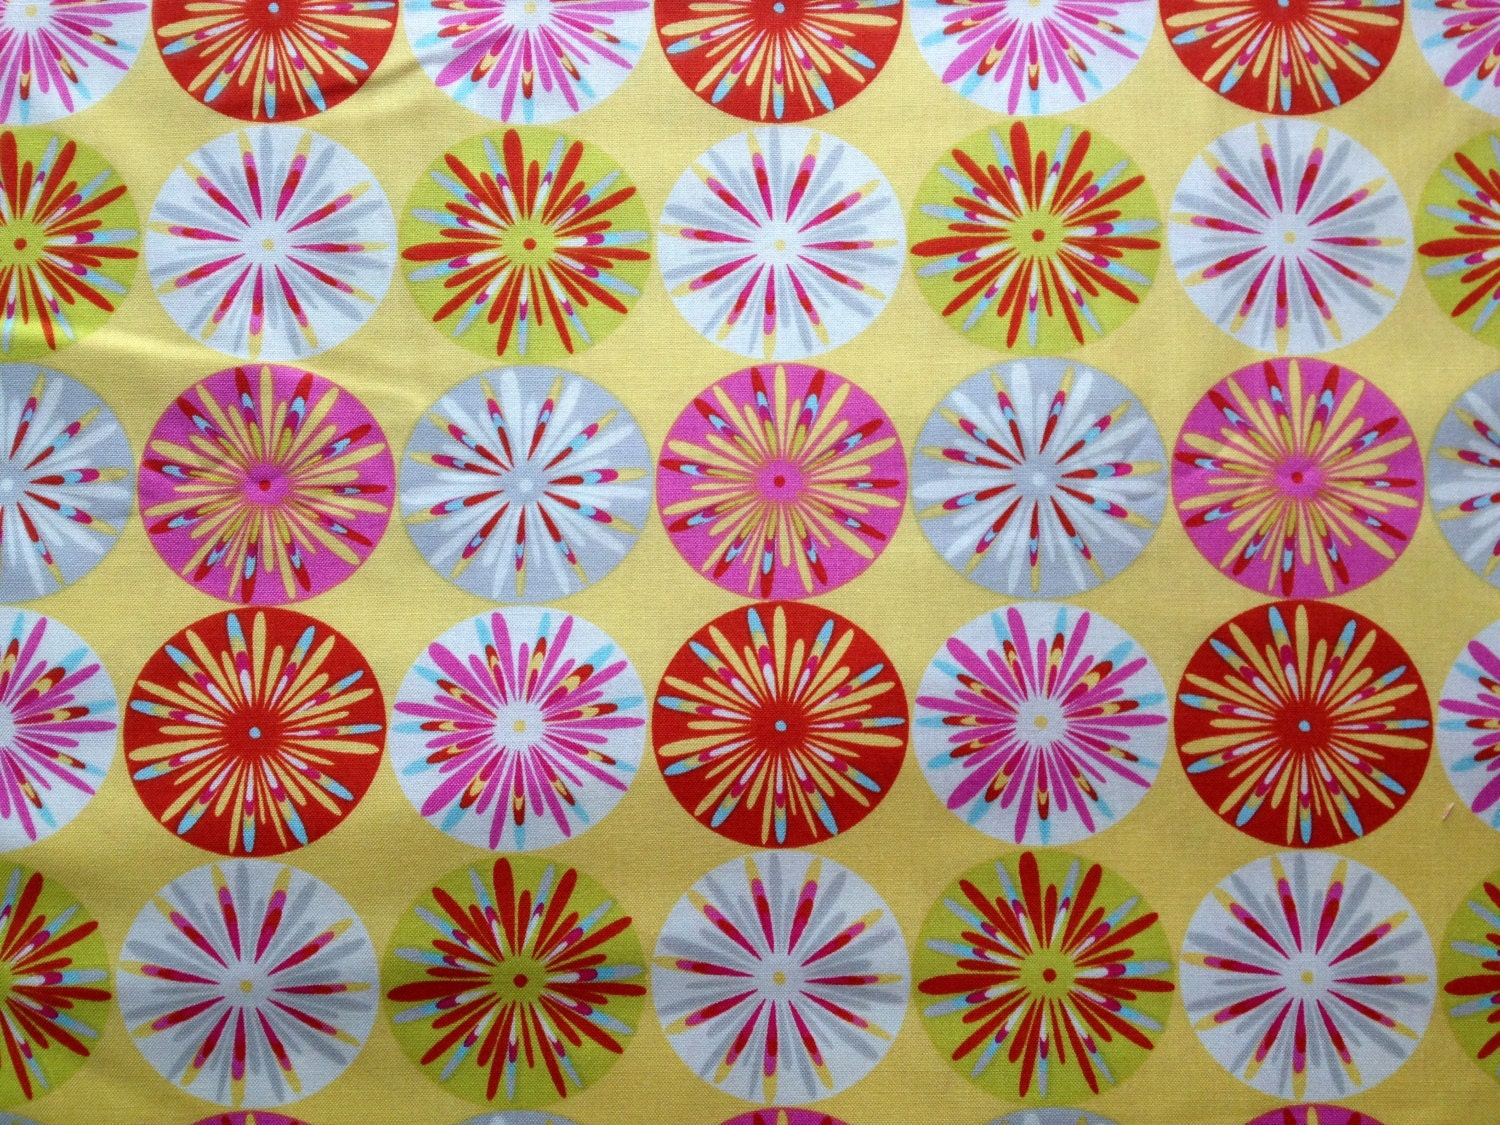 Kumari garden cotton fabric metre fat quarter yellow sunburst for Kumari garden fabric by dena designs